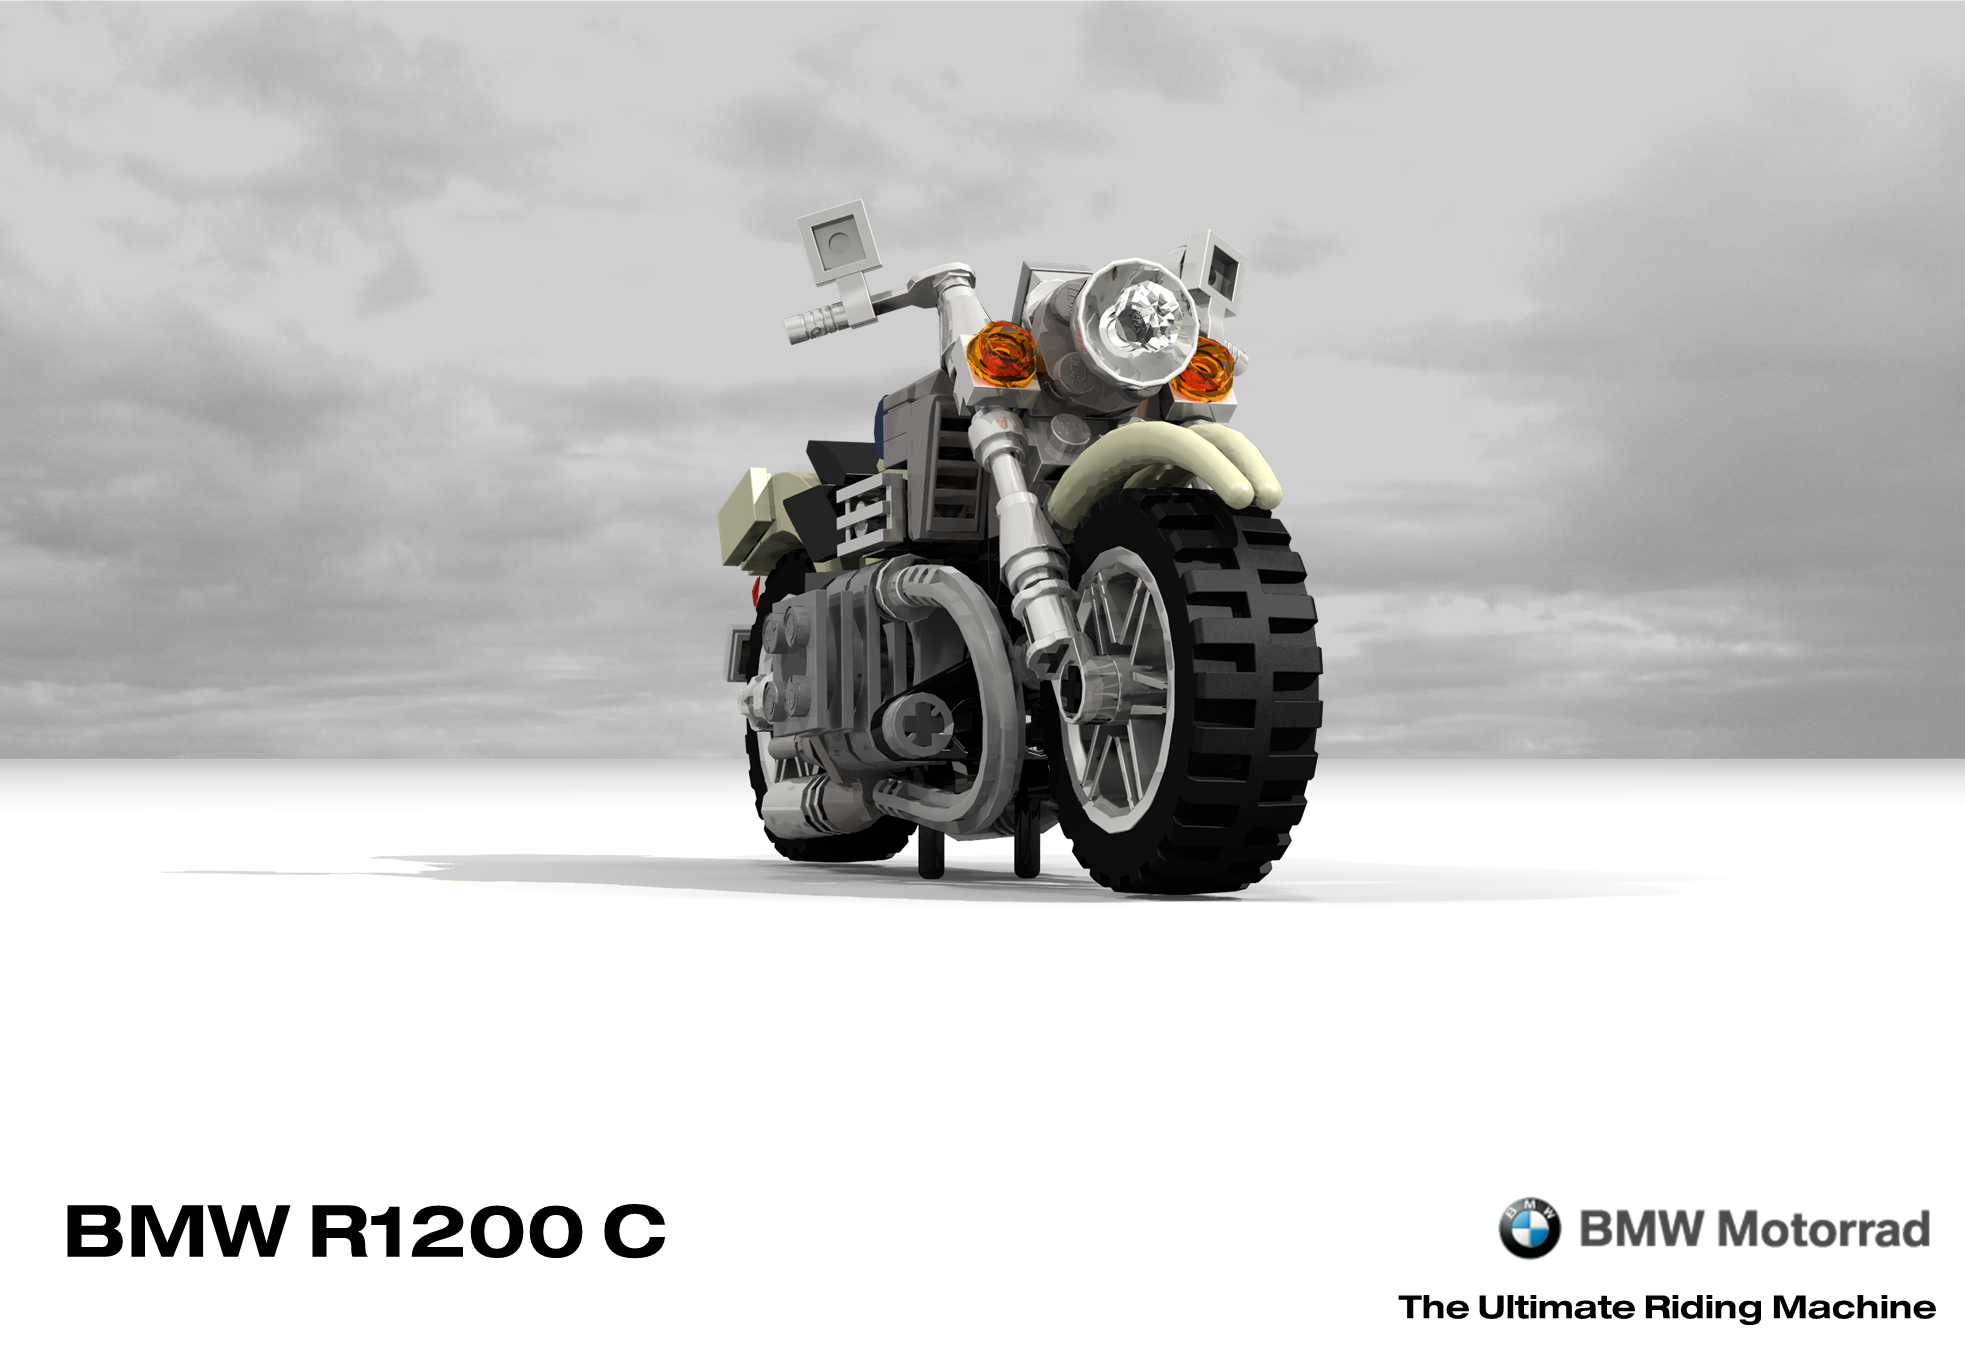 bmw_r1200c_motorcycle_04.png